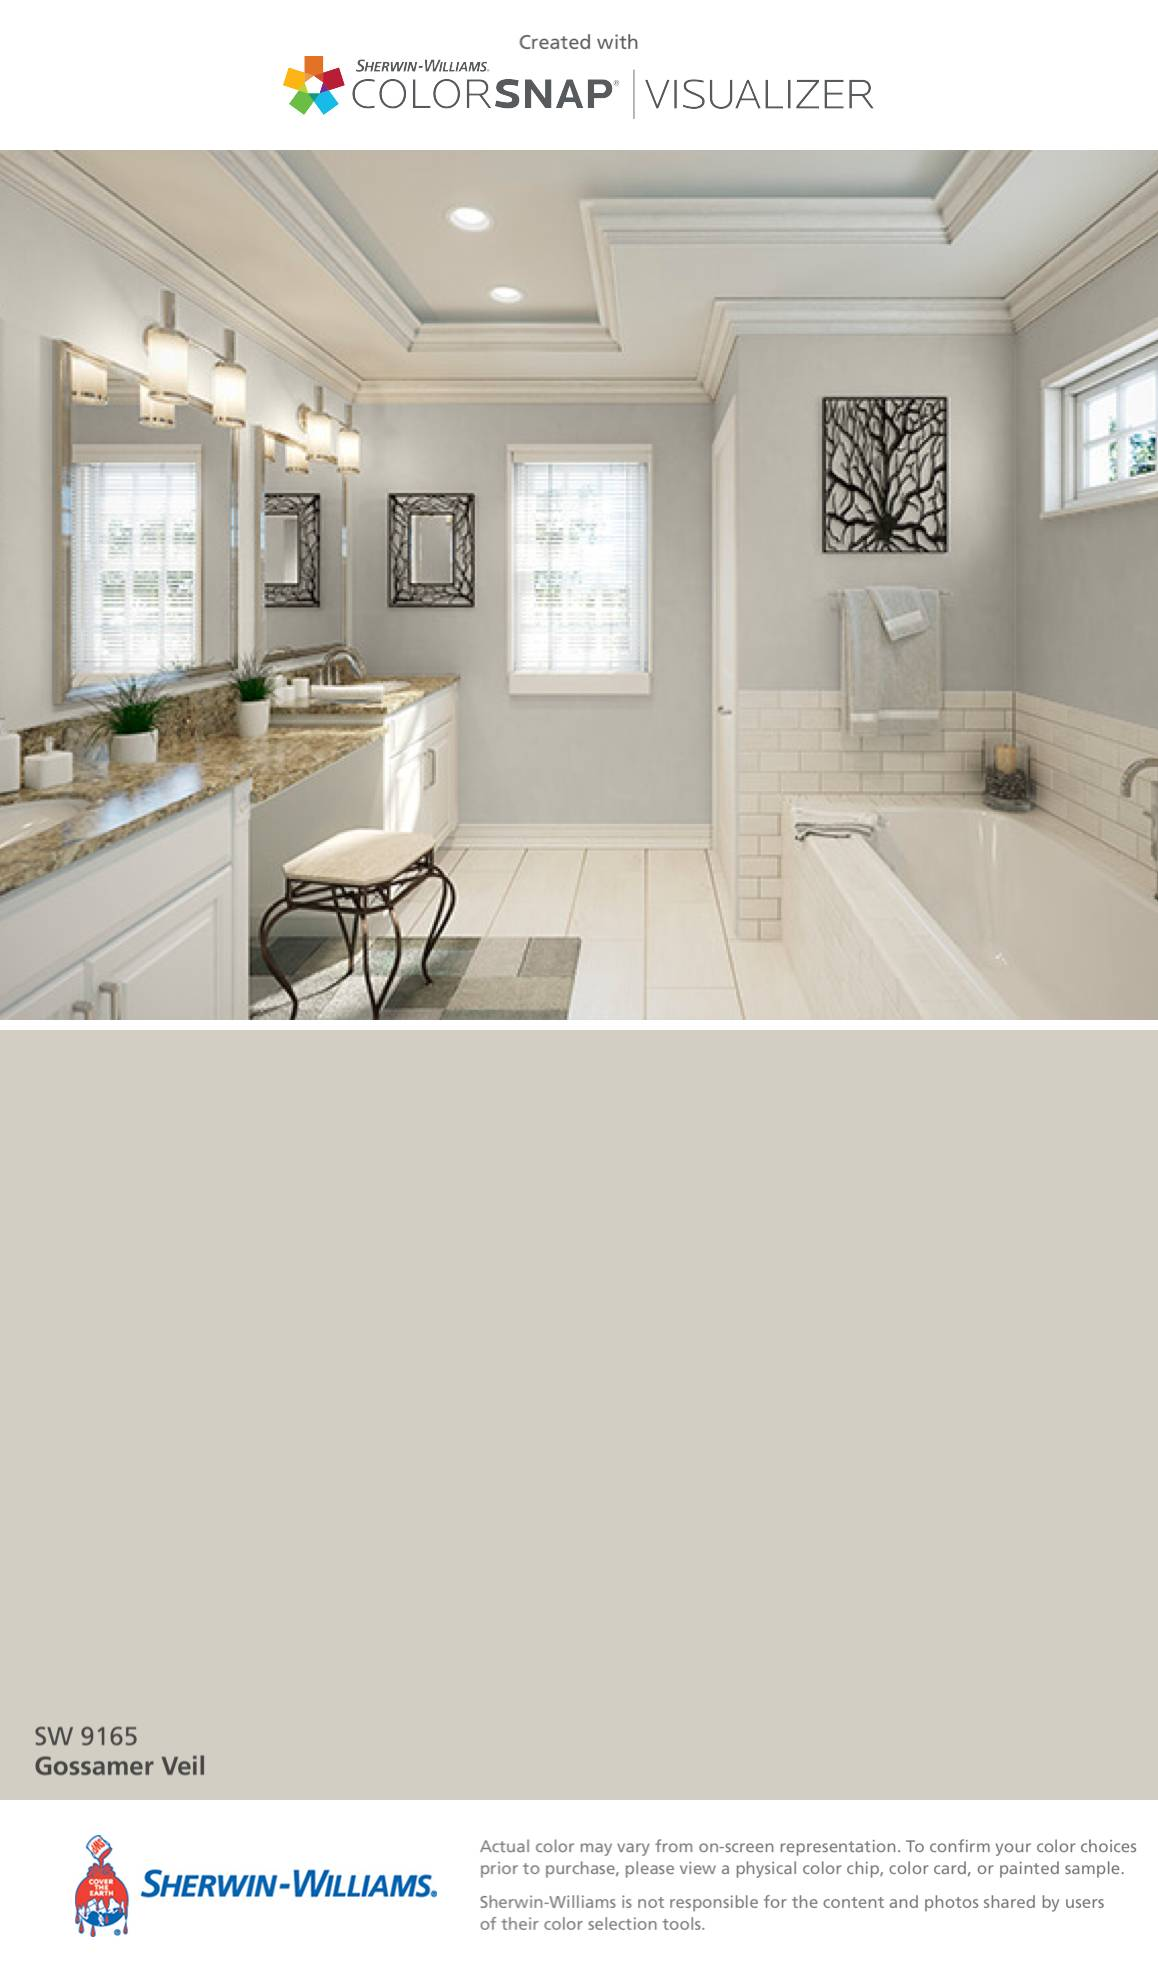 Highland Grey Sherwin Williams Lovely I Found This Color with Colorsnap Visualizer for iPhone by